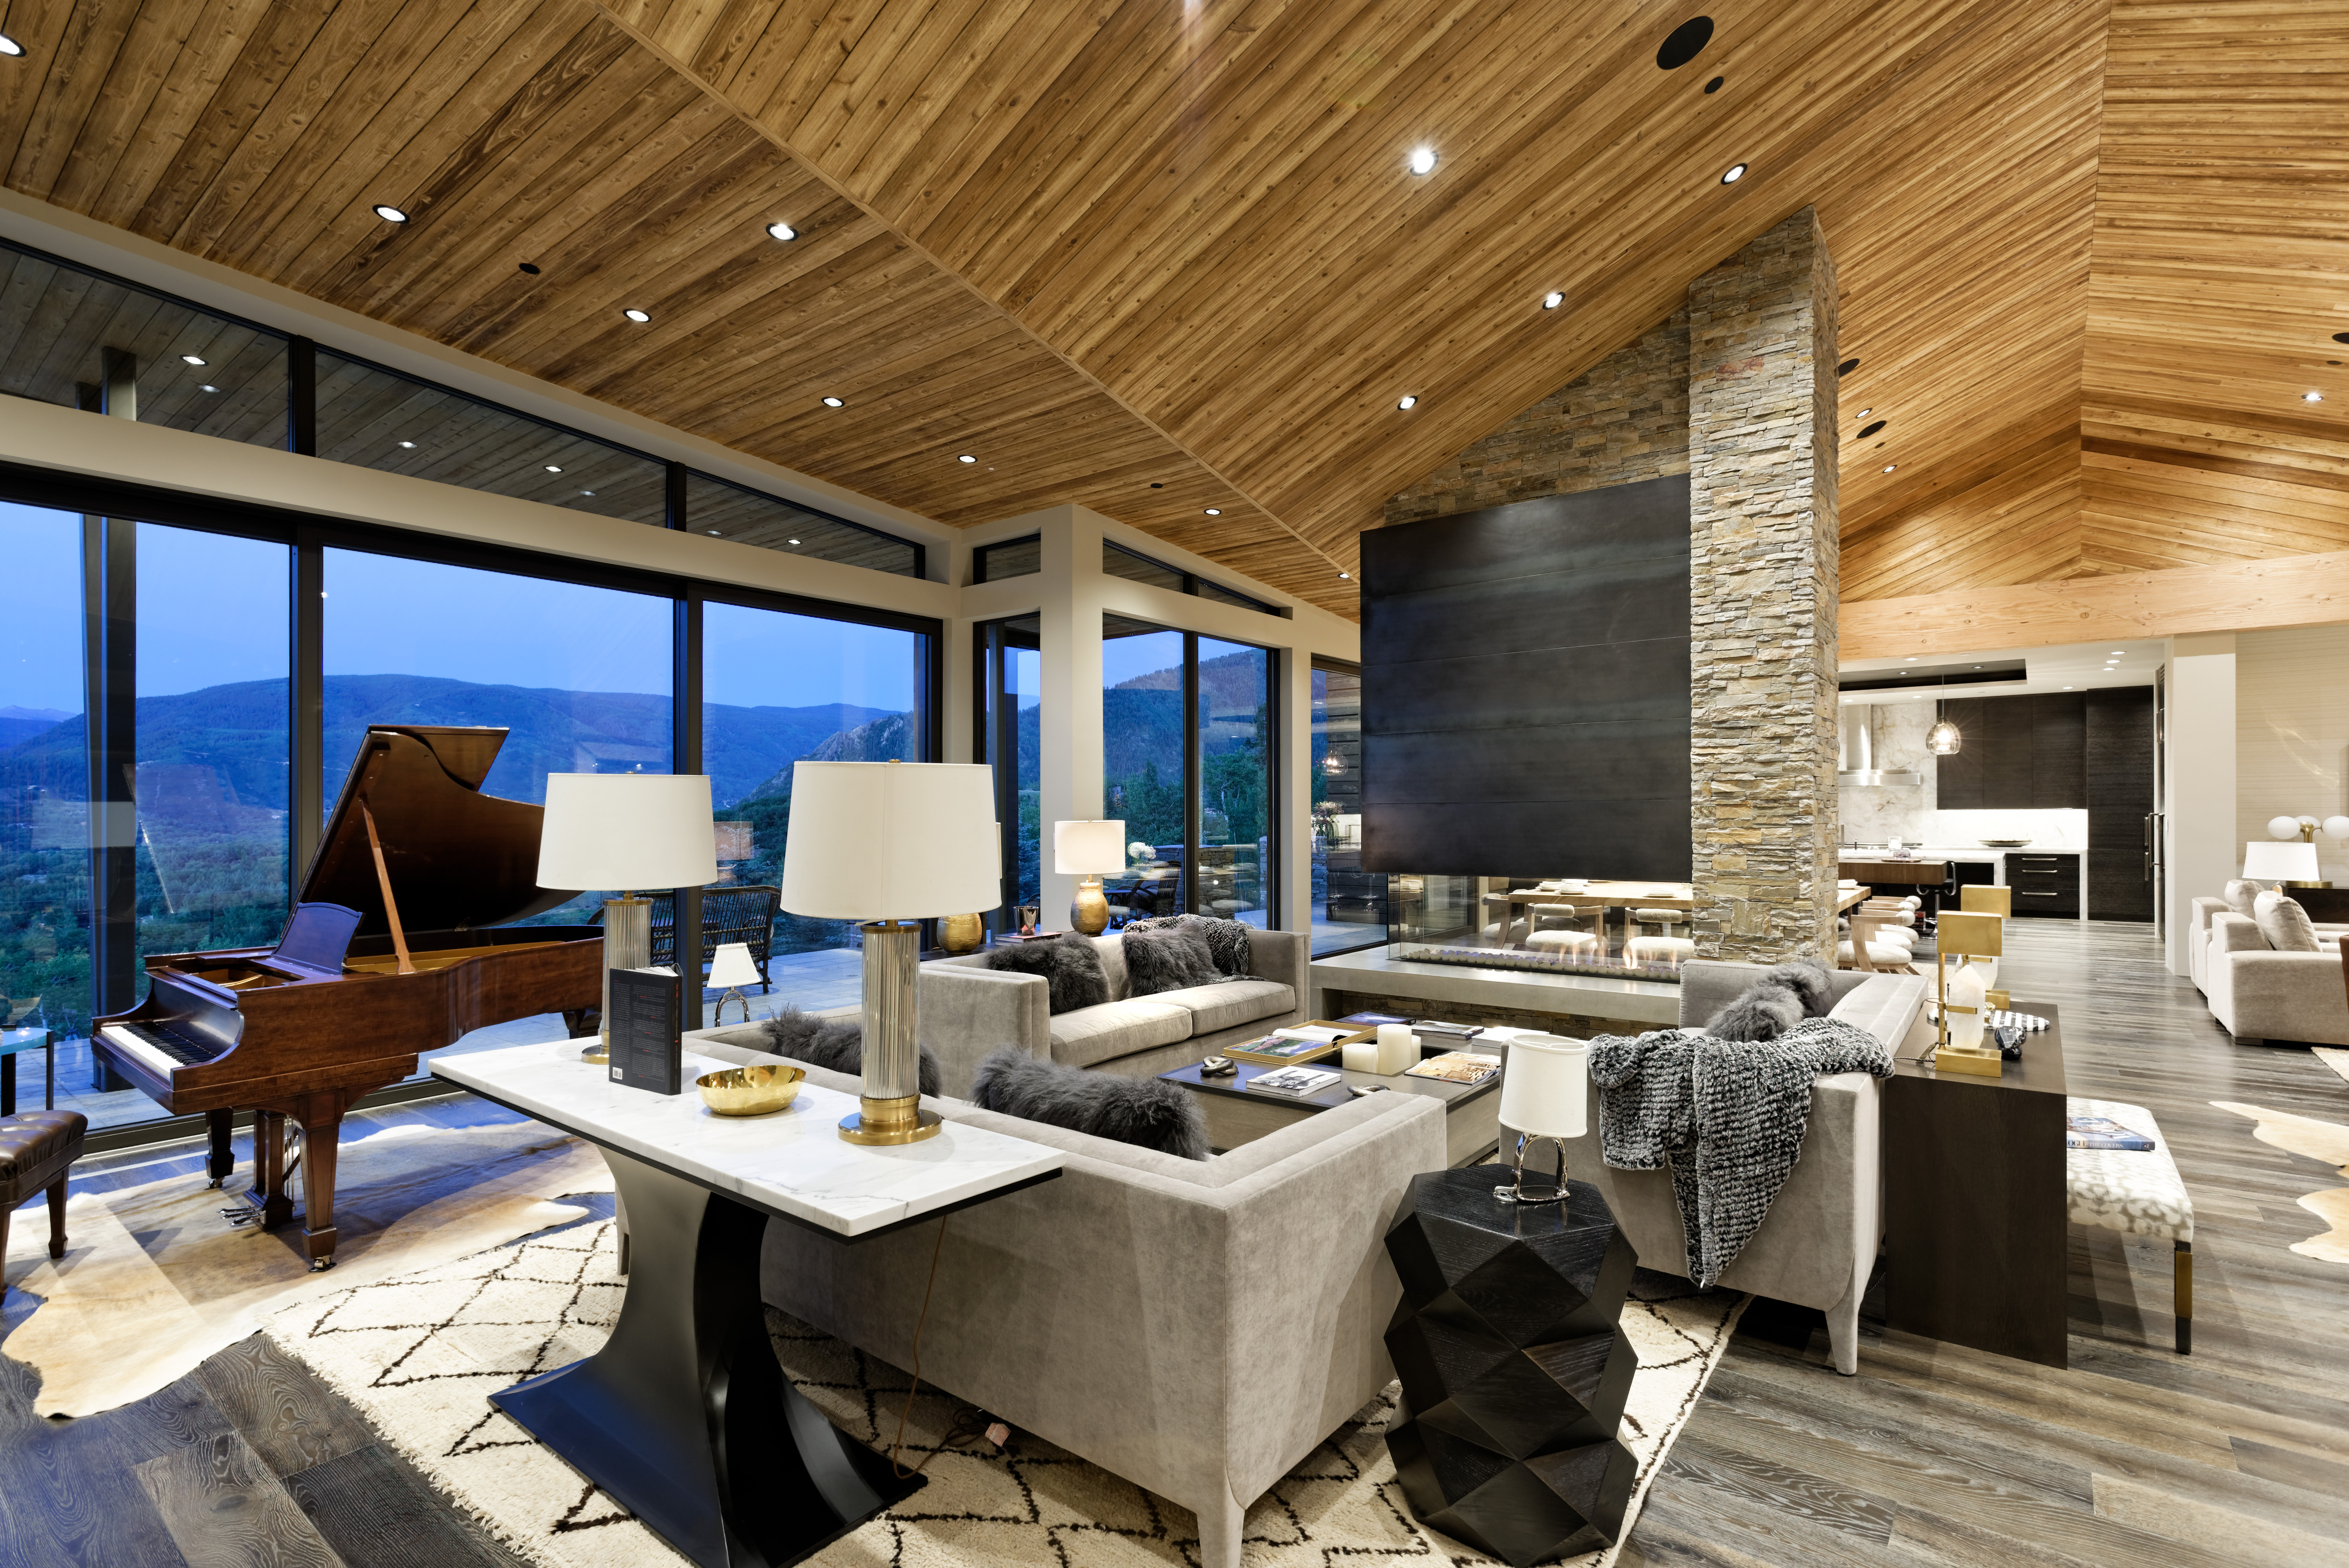 This $36-million mountain modern home in Aspen comes complete with $2-million worth of custom furniture